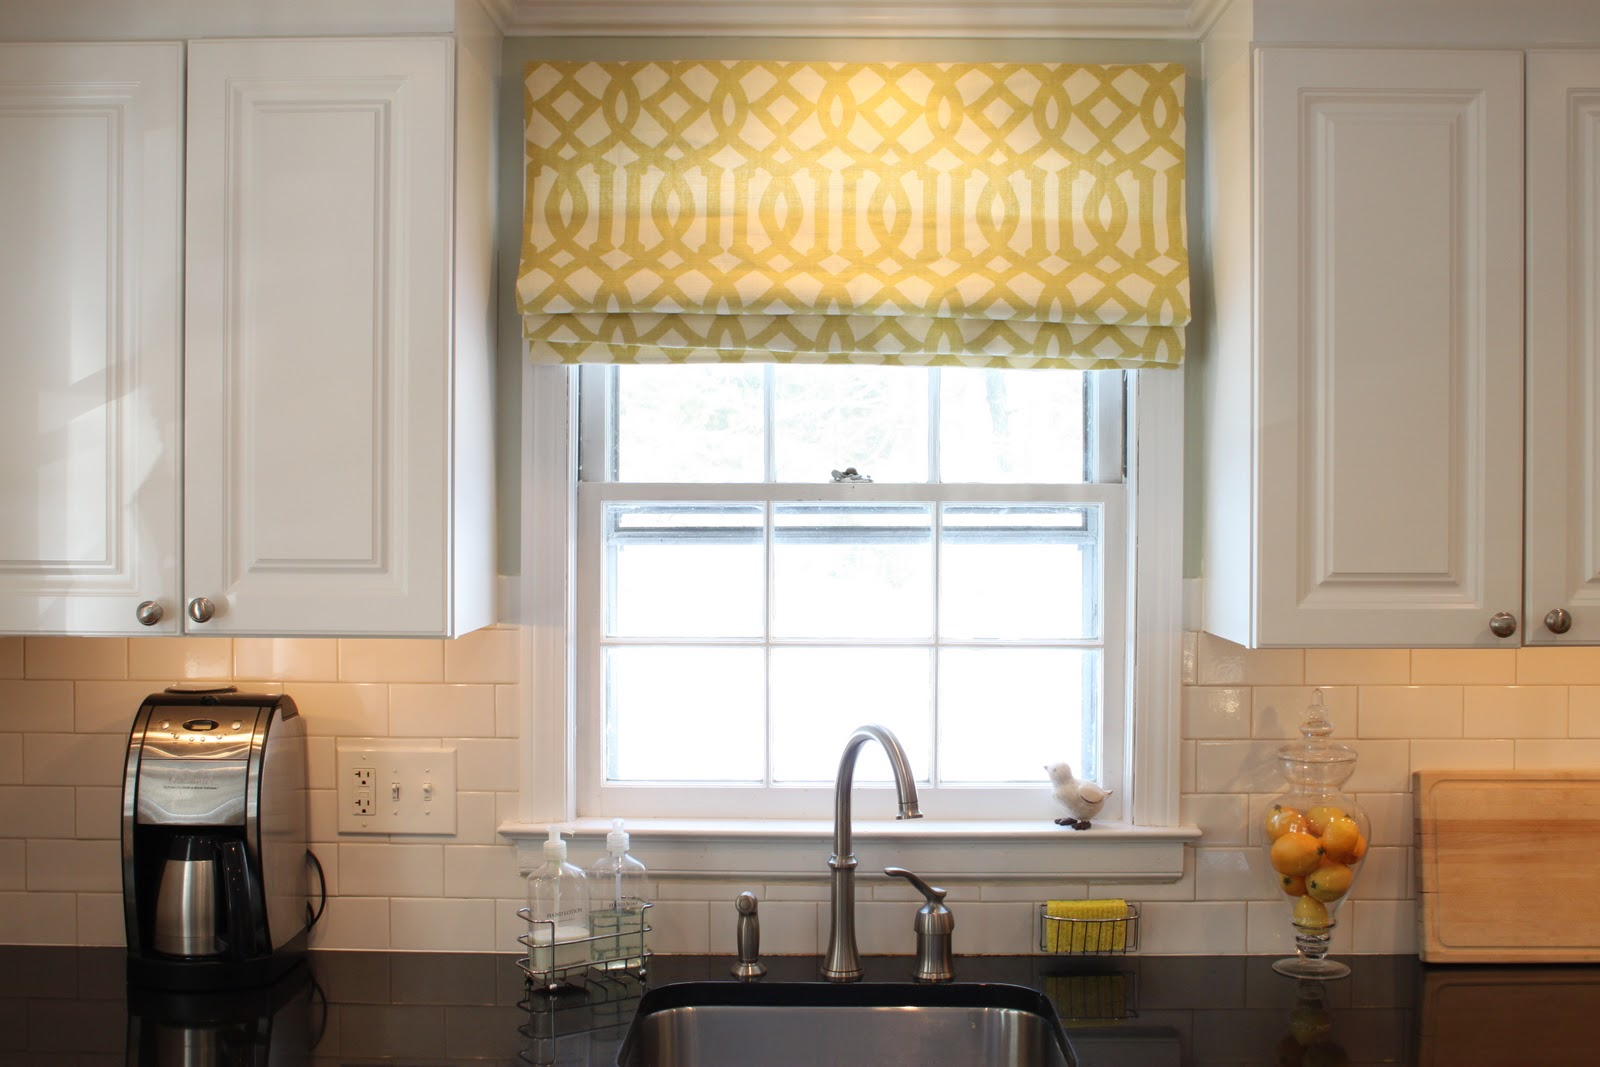 Attirant Wonderful Kitchen Using Folding Window Treatments Ideas Also Dark Countertop